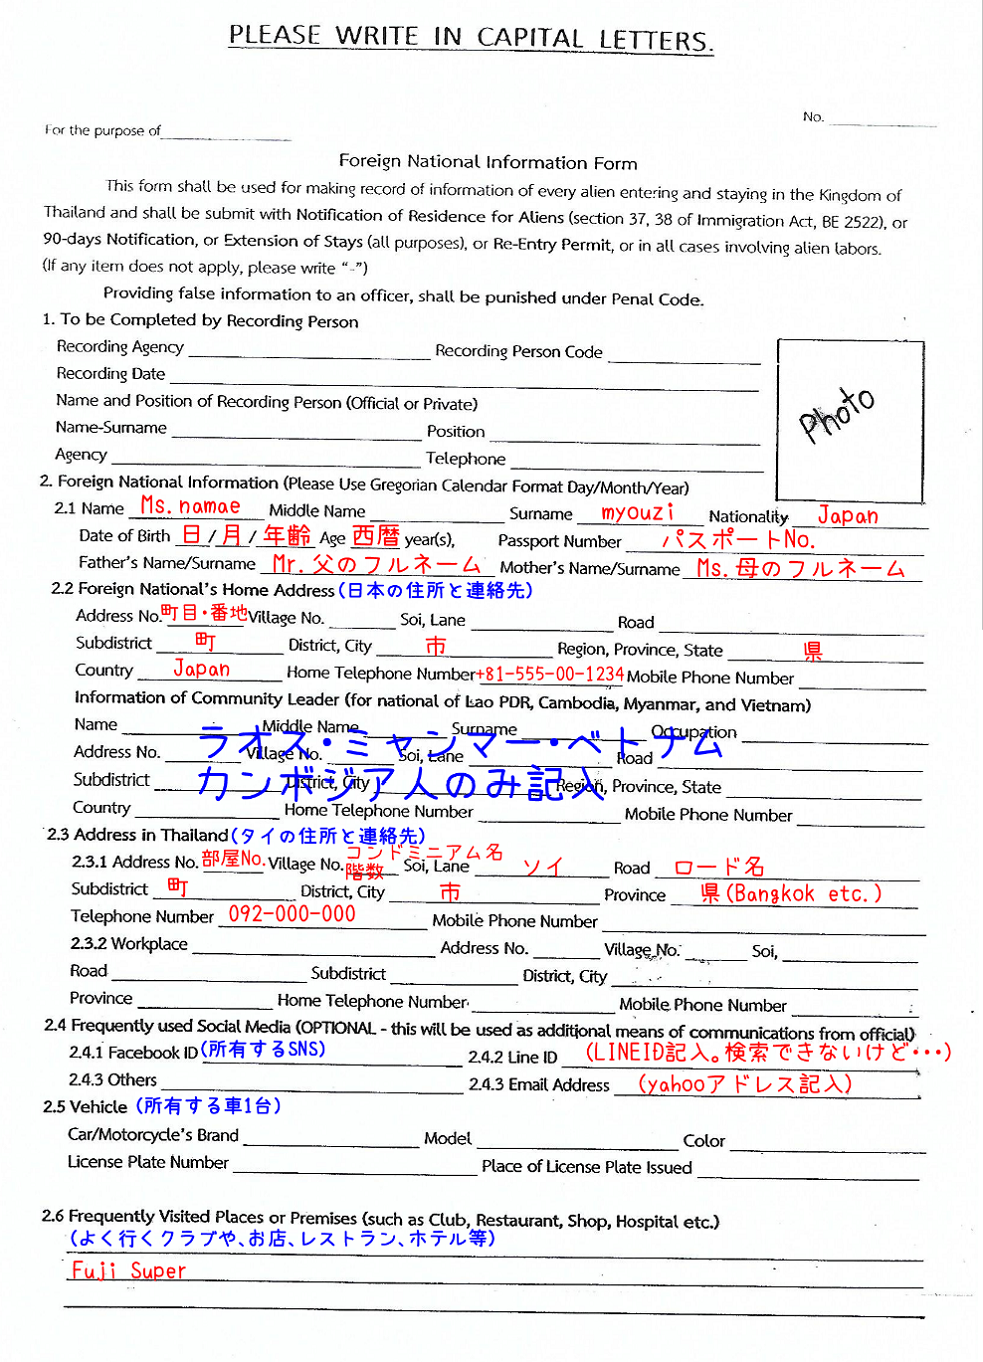 foreign national information form 個人情報入力ホームの書き方とPDF